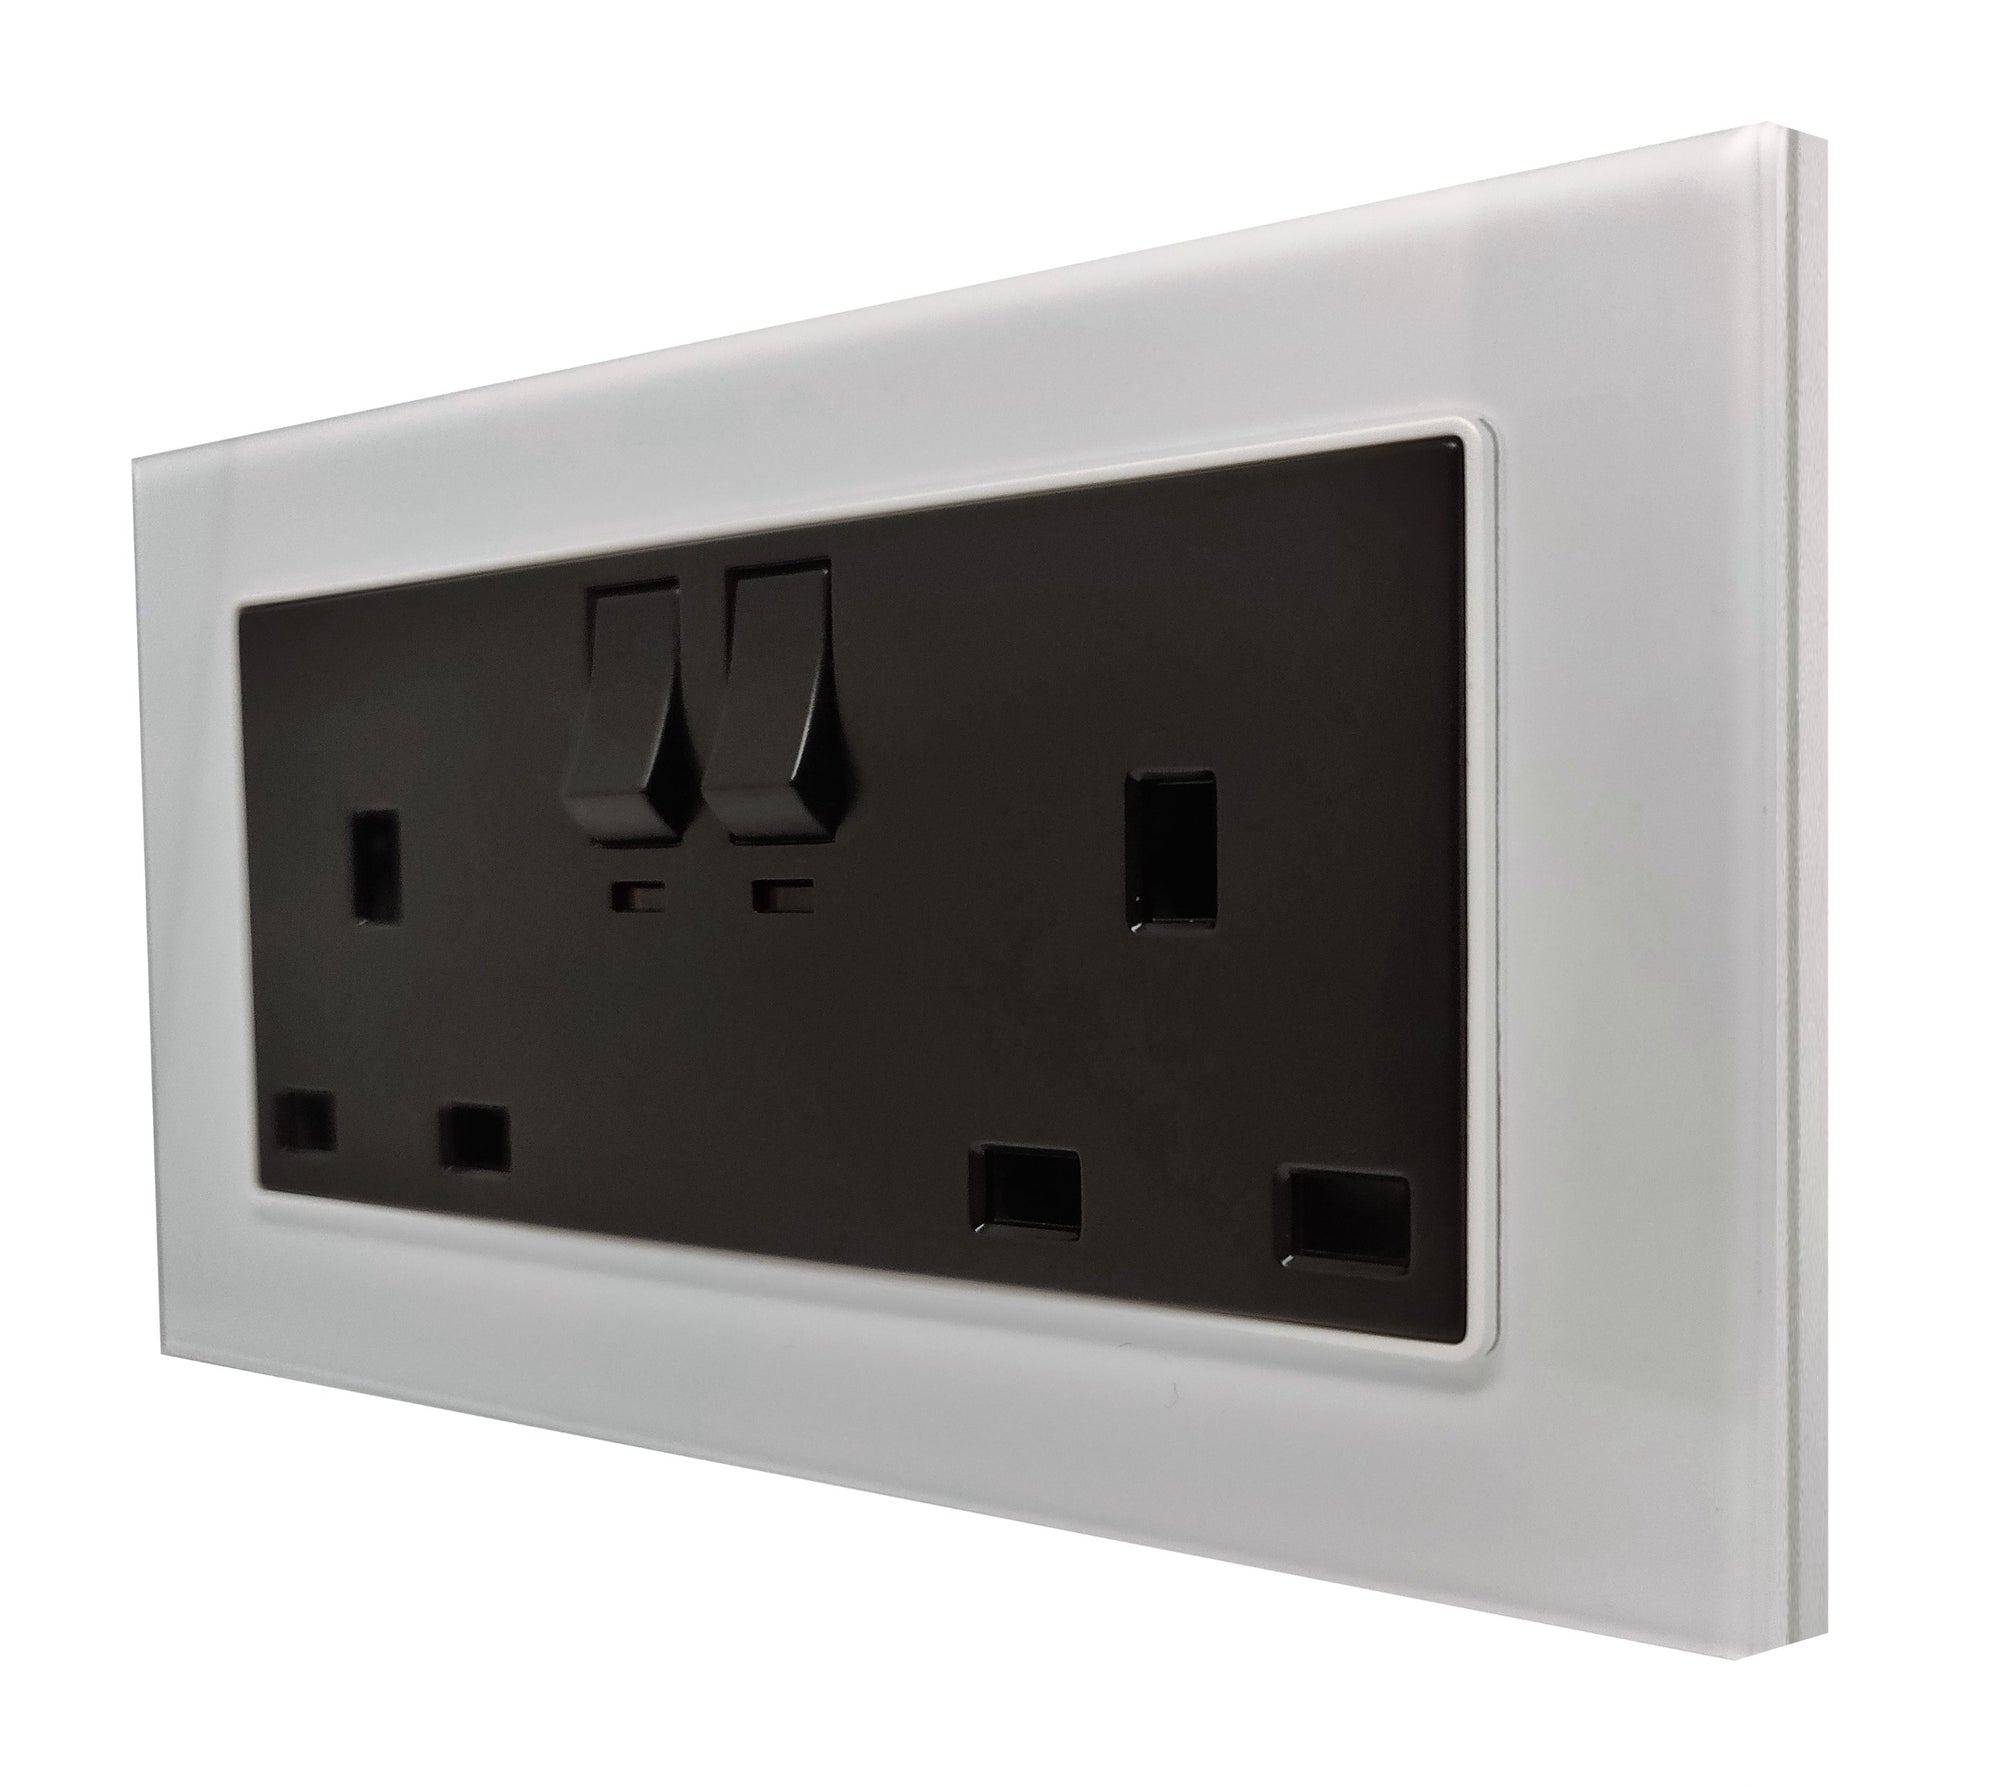 Double UK 13A 3-Pin AC Wall Power Socket in White Glass Frame & Black Centre